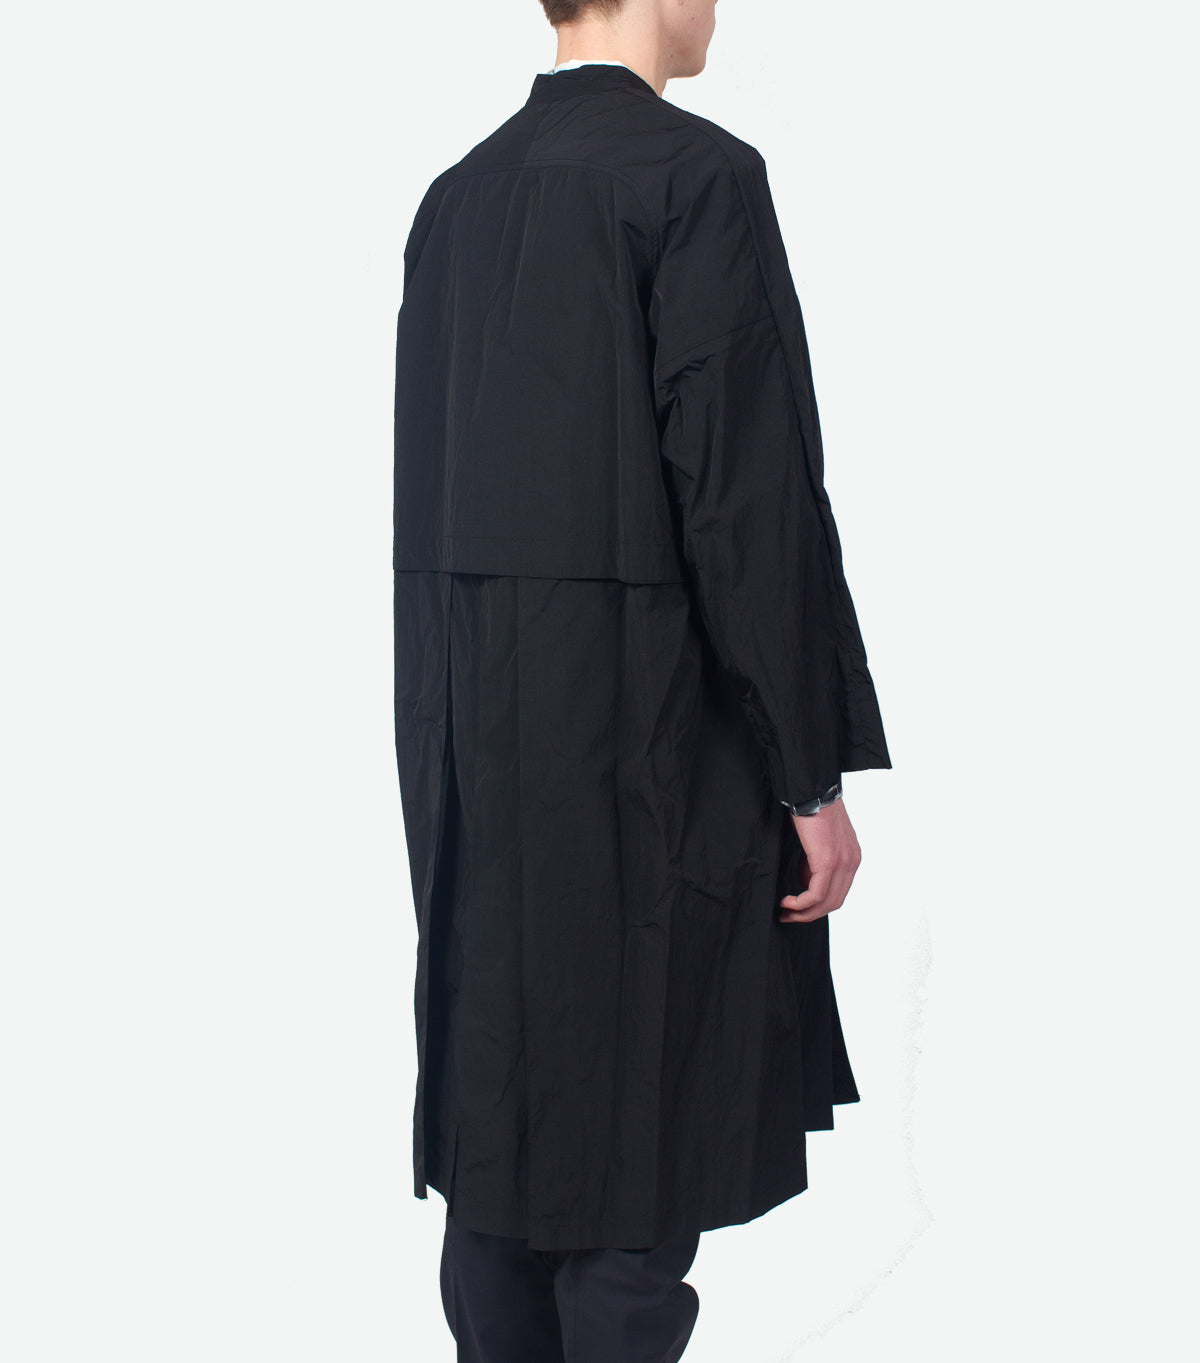 SASQUATCHFABRIX VENTILATION NYLON COAT BLACK | somewhereofficial.